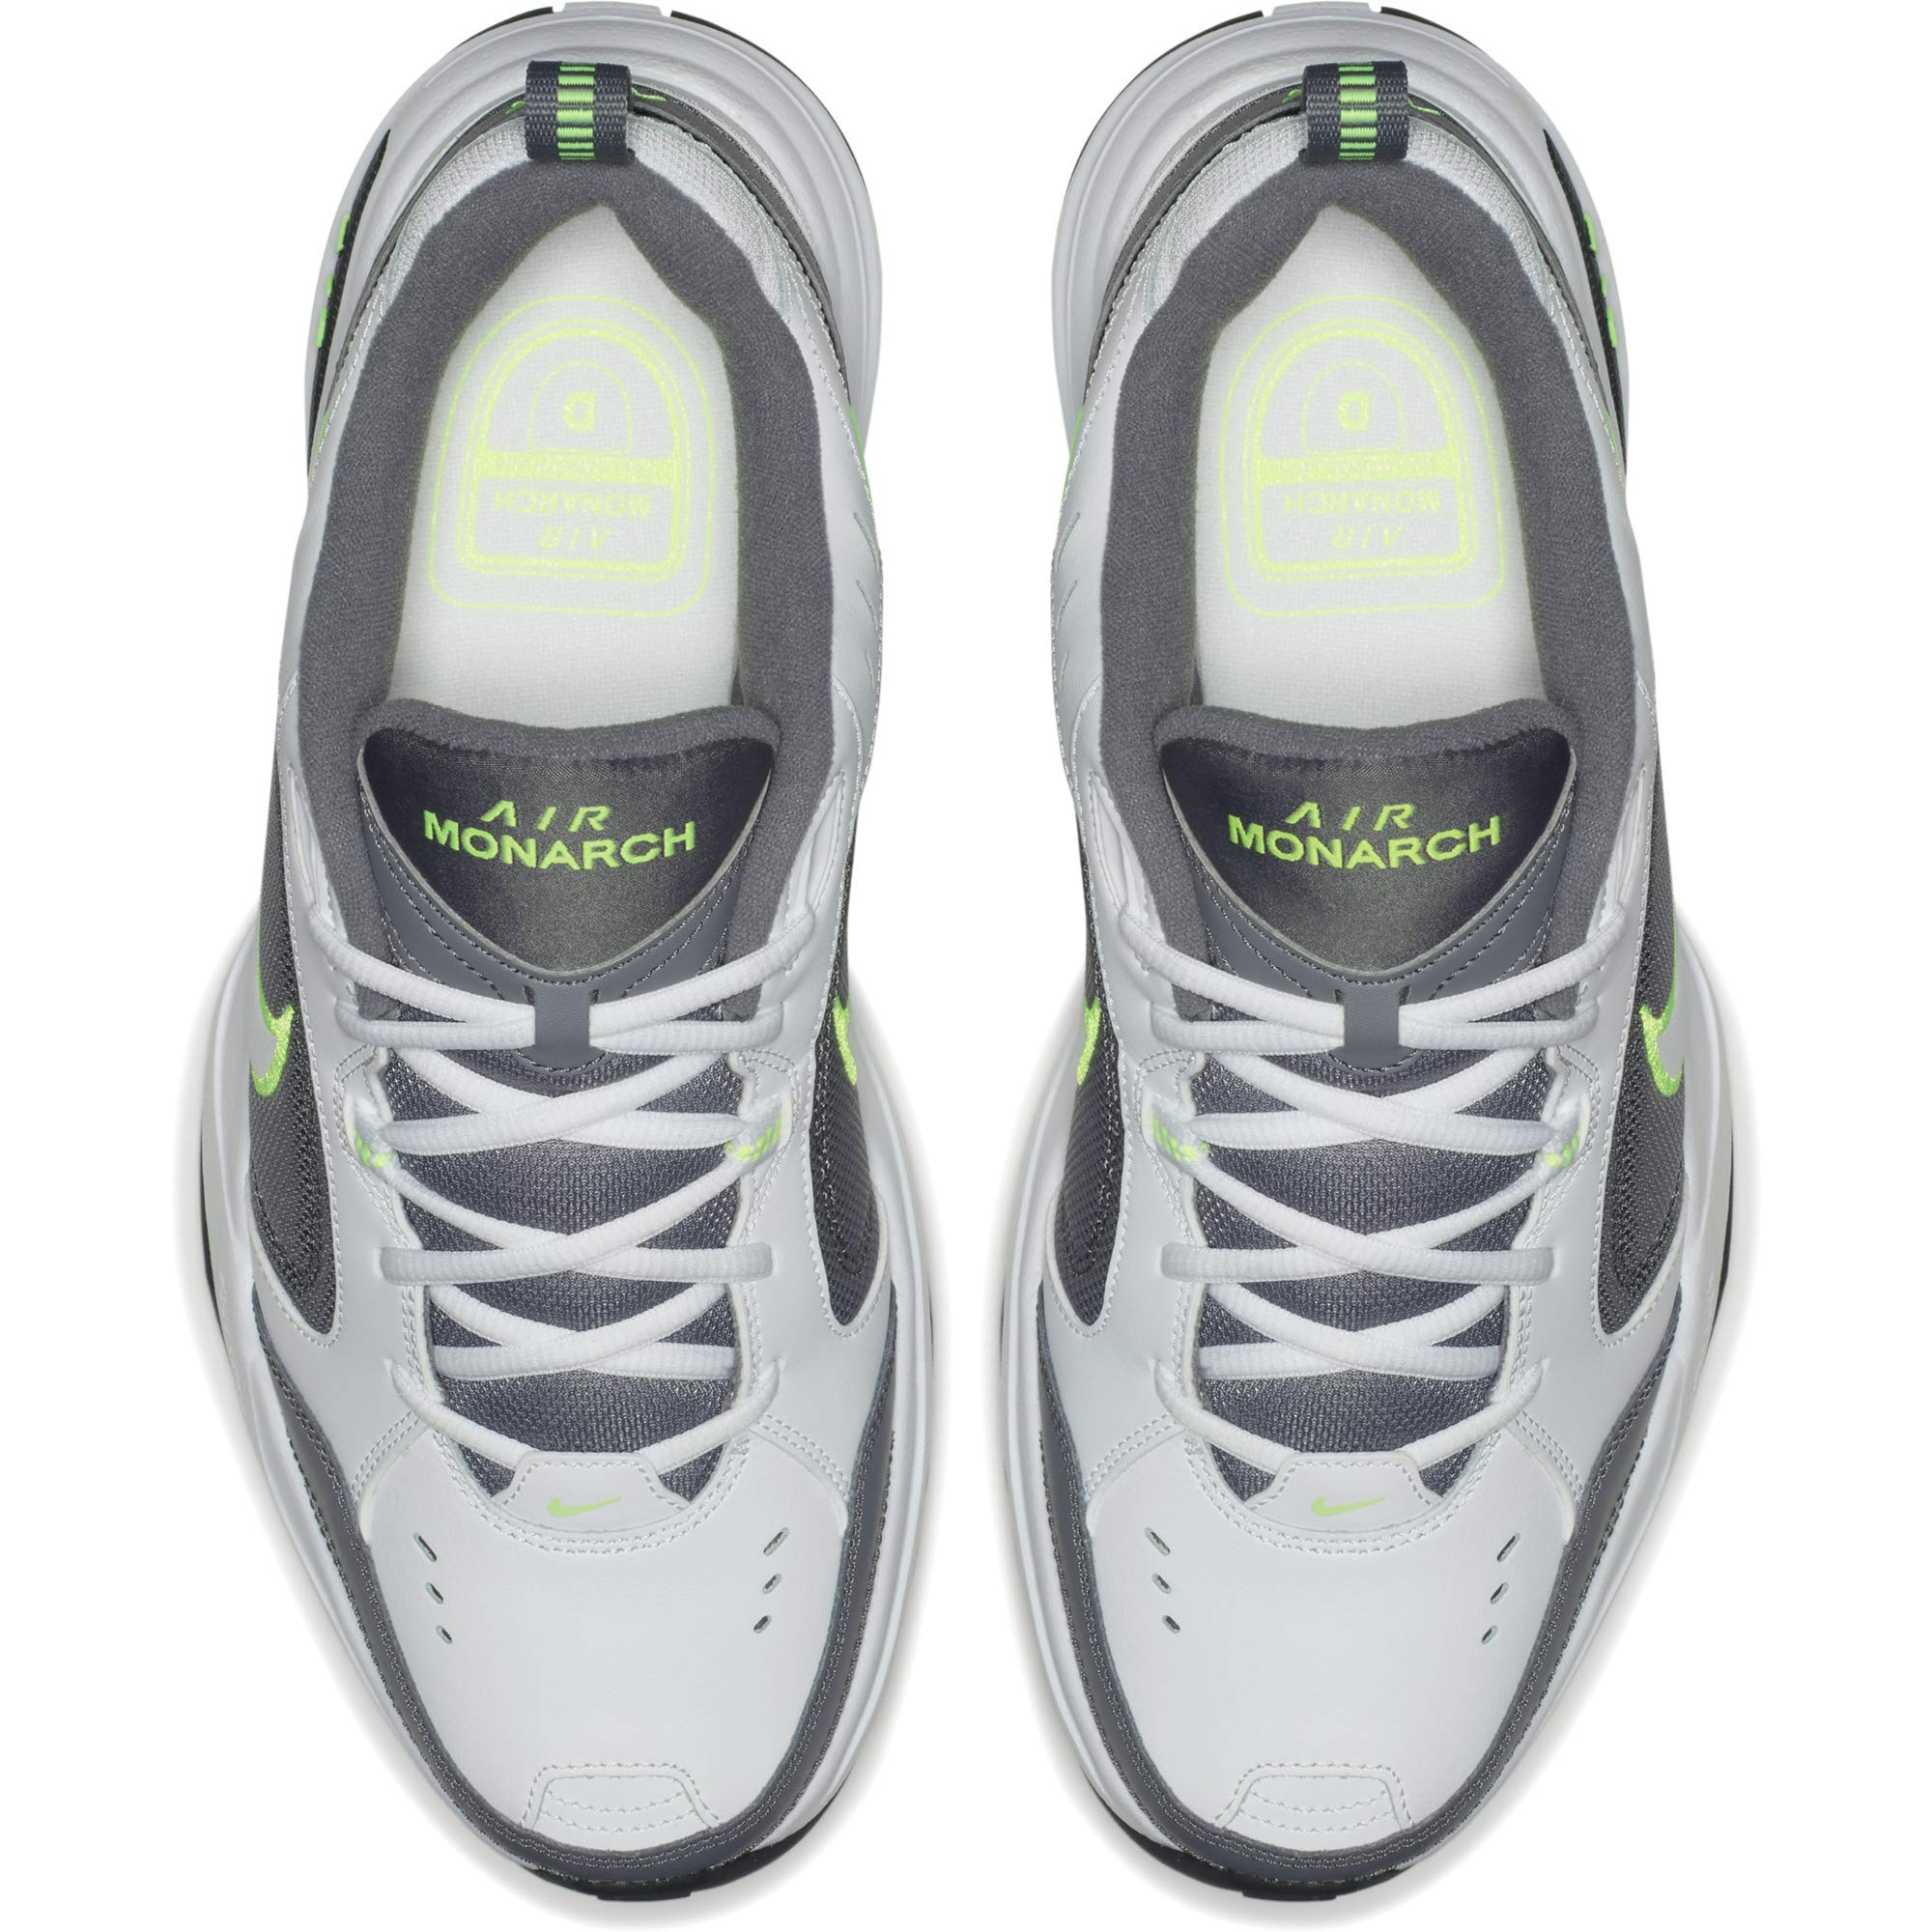 Nike Men's Air Monarch IV Cross Trainer, White-Cool Grey-Anthracite, 6.5 Regular US by Nike (Image #10)